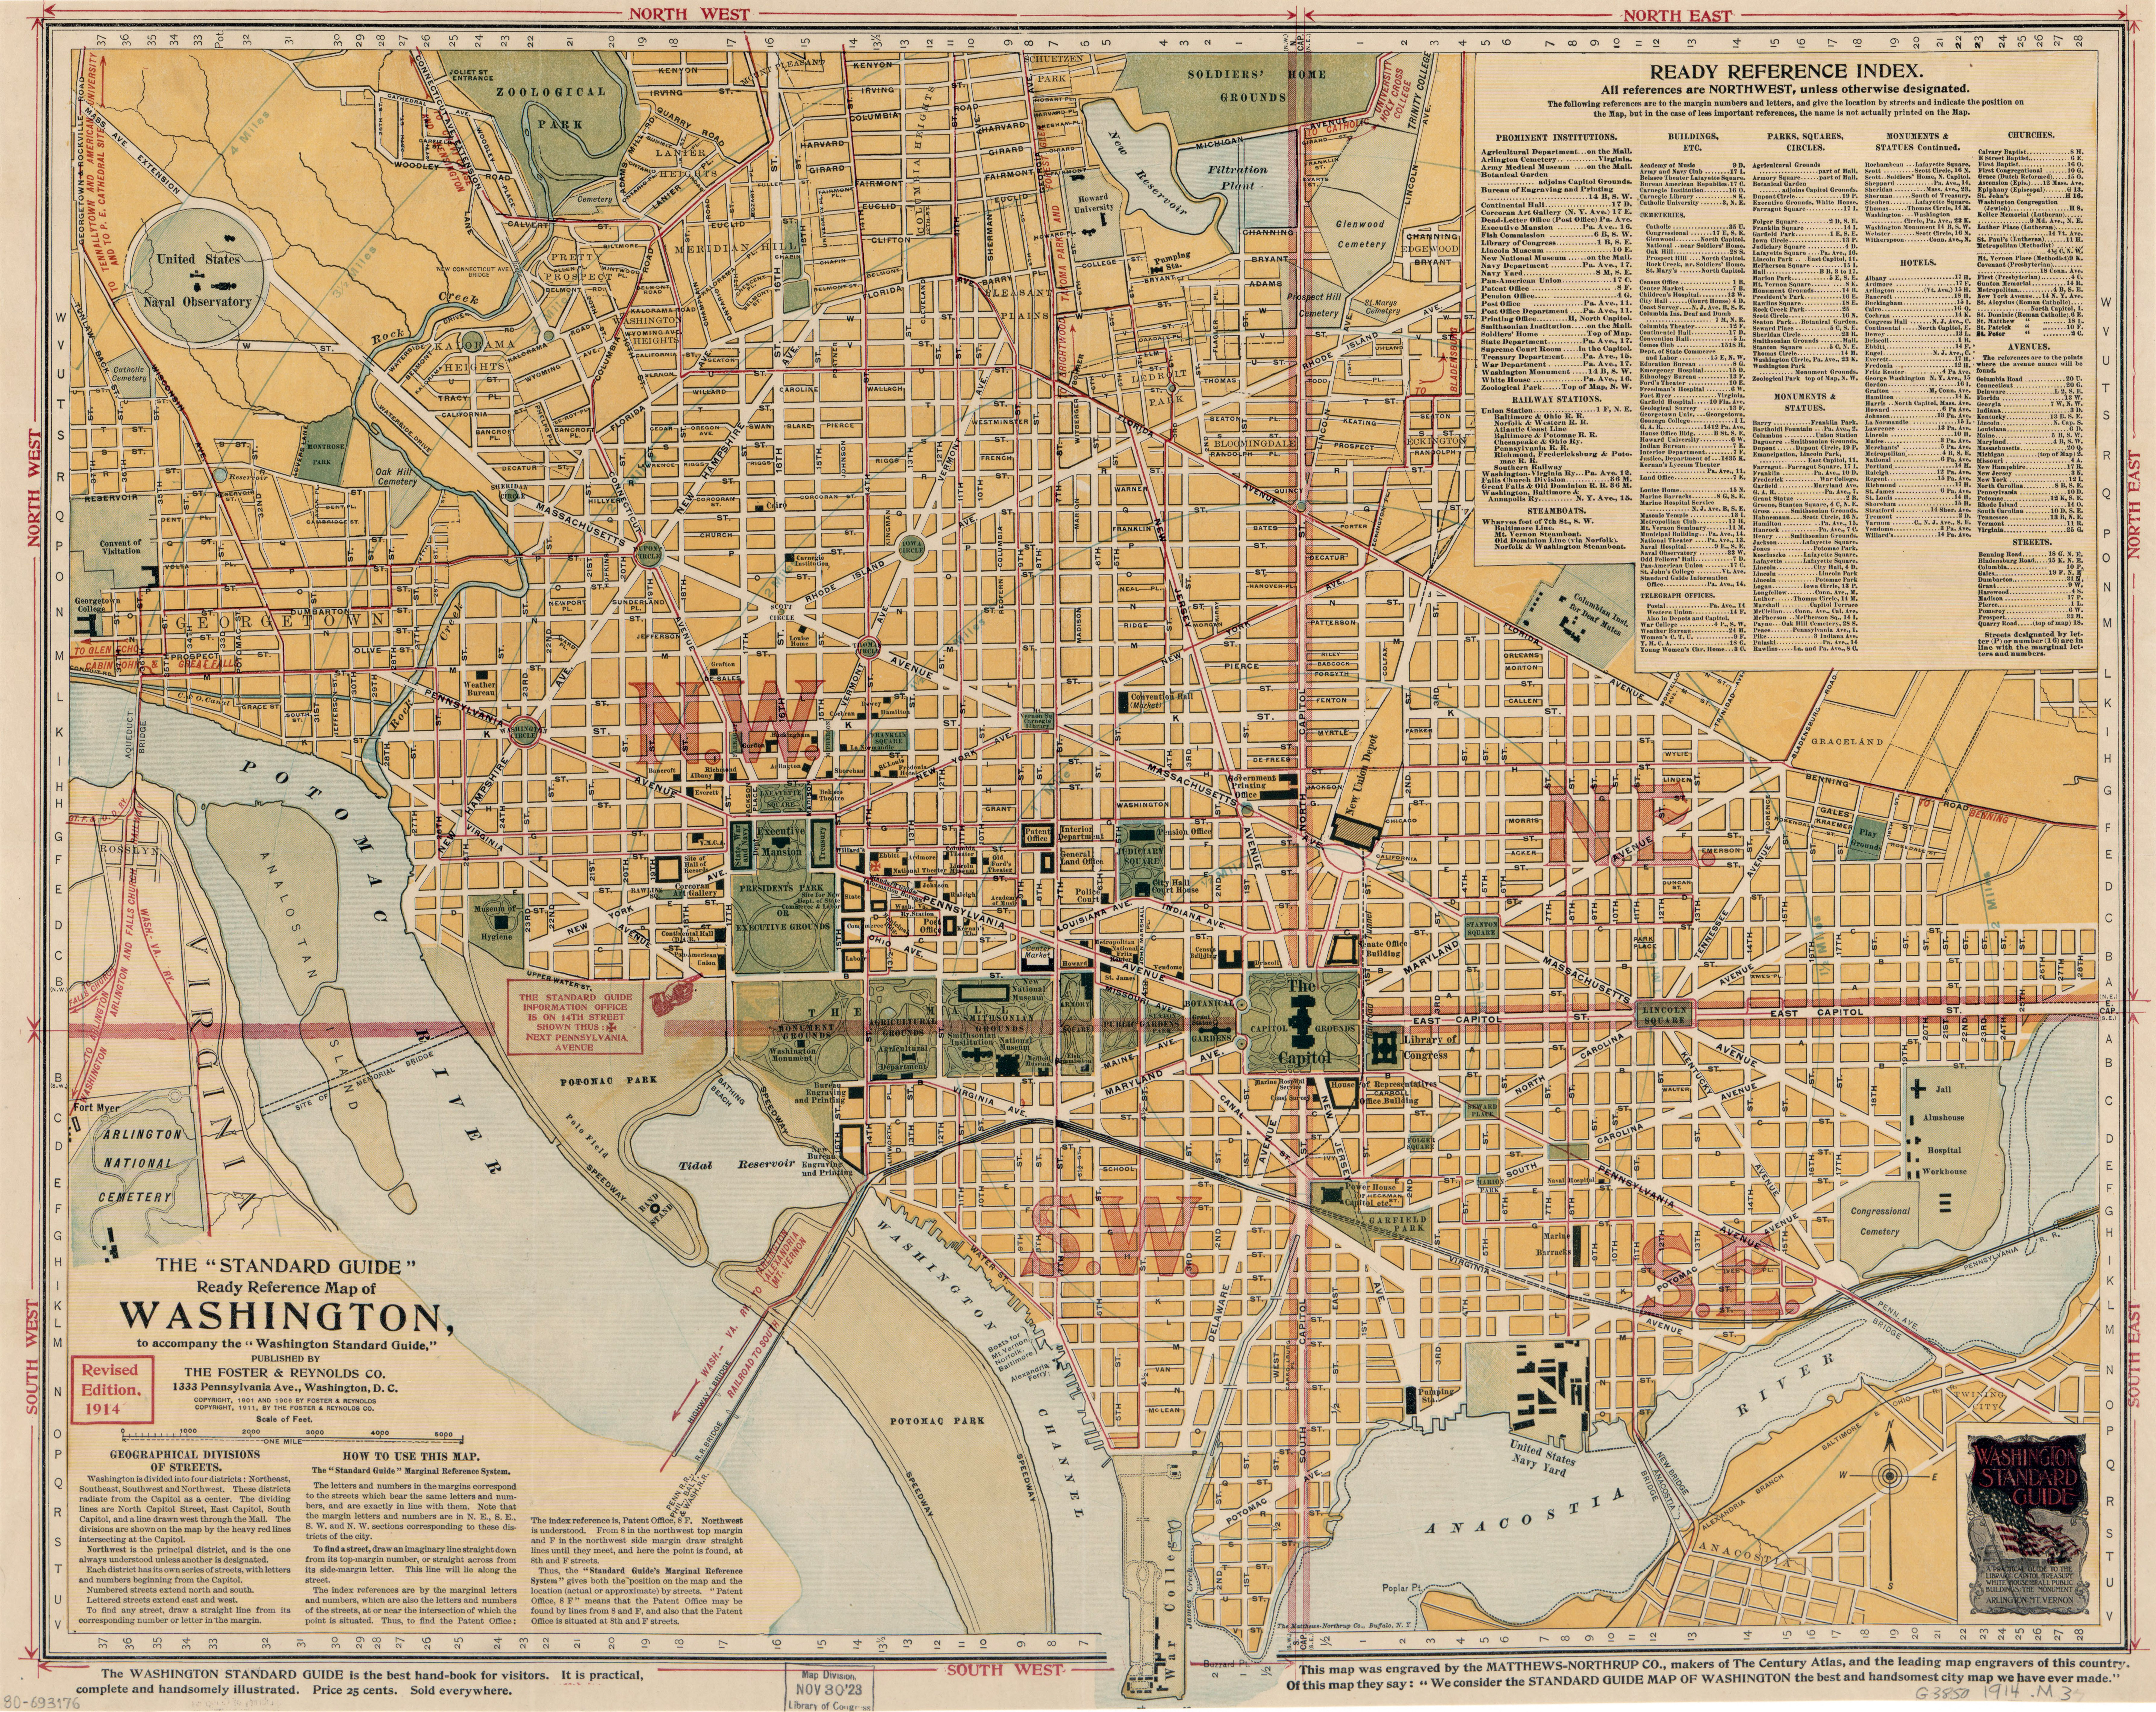 Large scale old standard guide map of Washington DC 1914